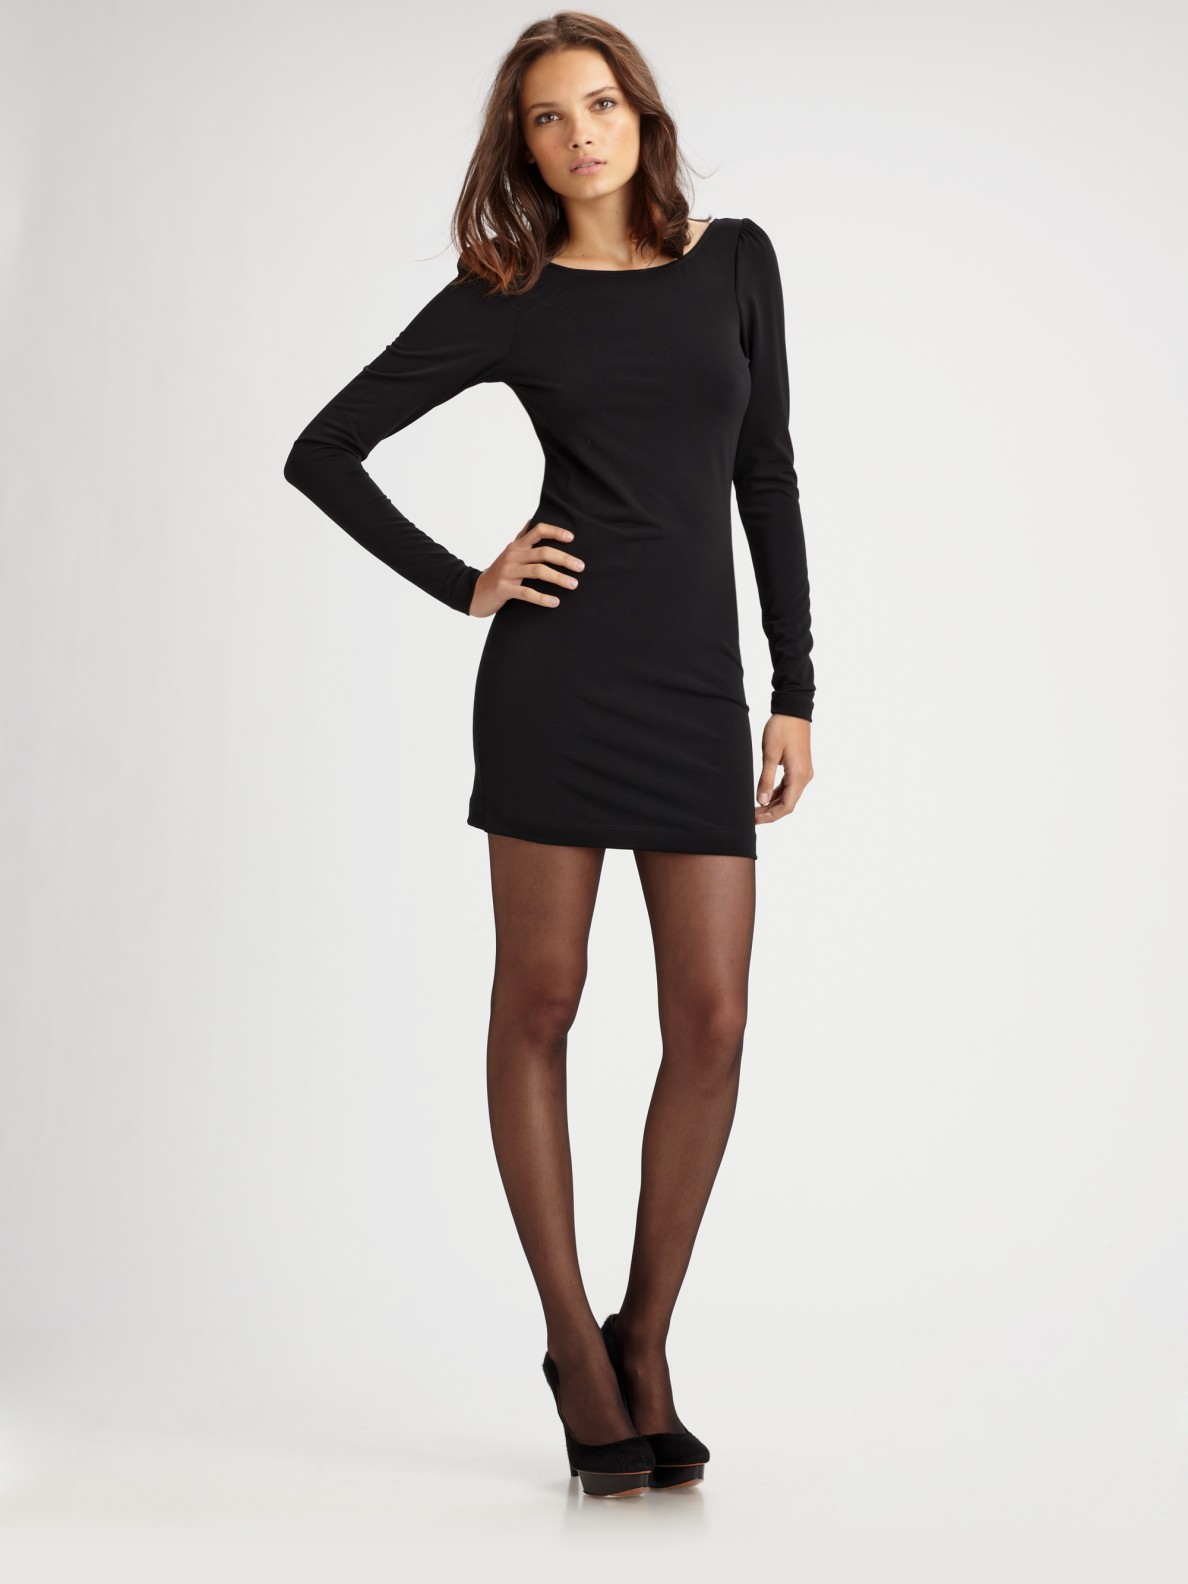 Long Sleeve Holiday Dresses